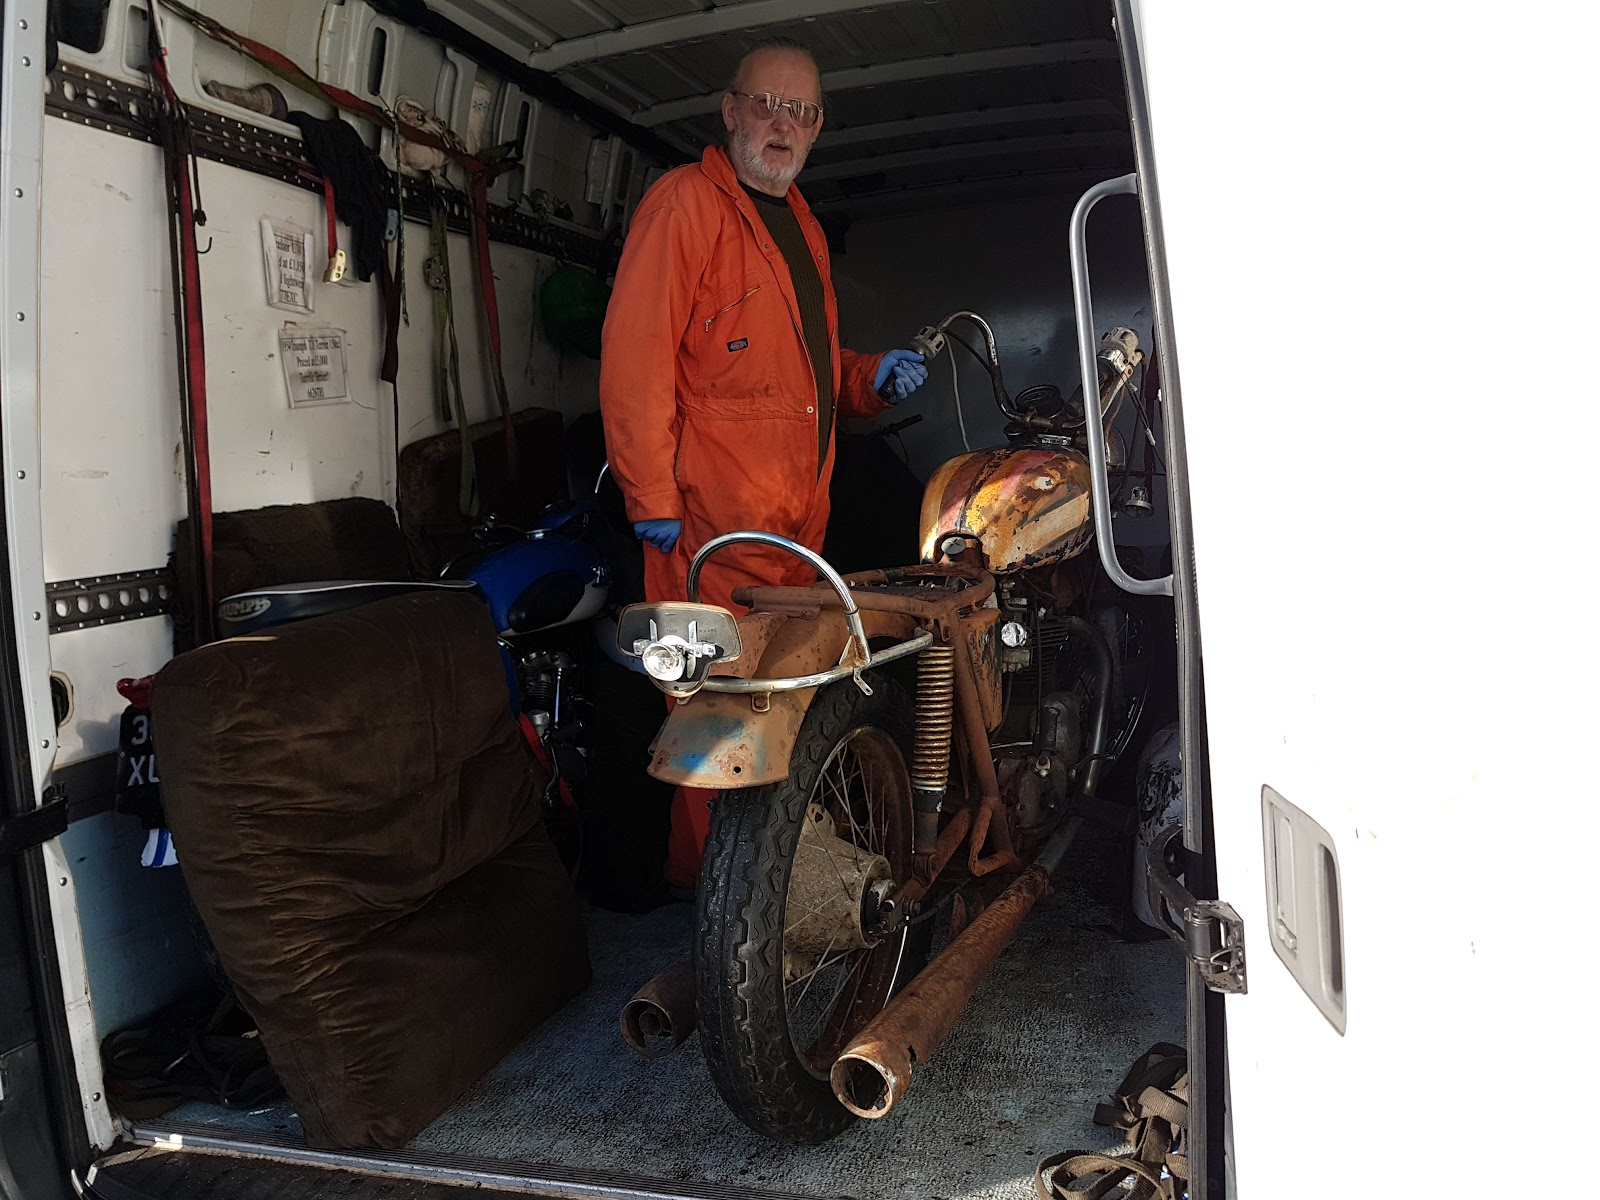 My new Bonneville arriving at home in the back of a van.